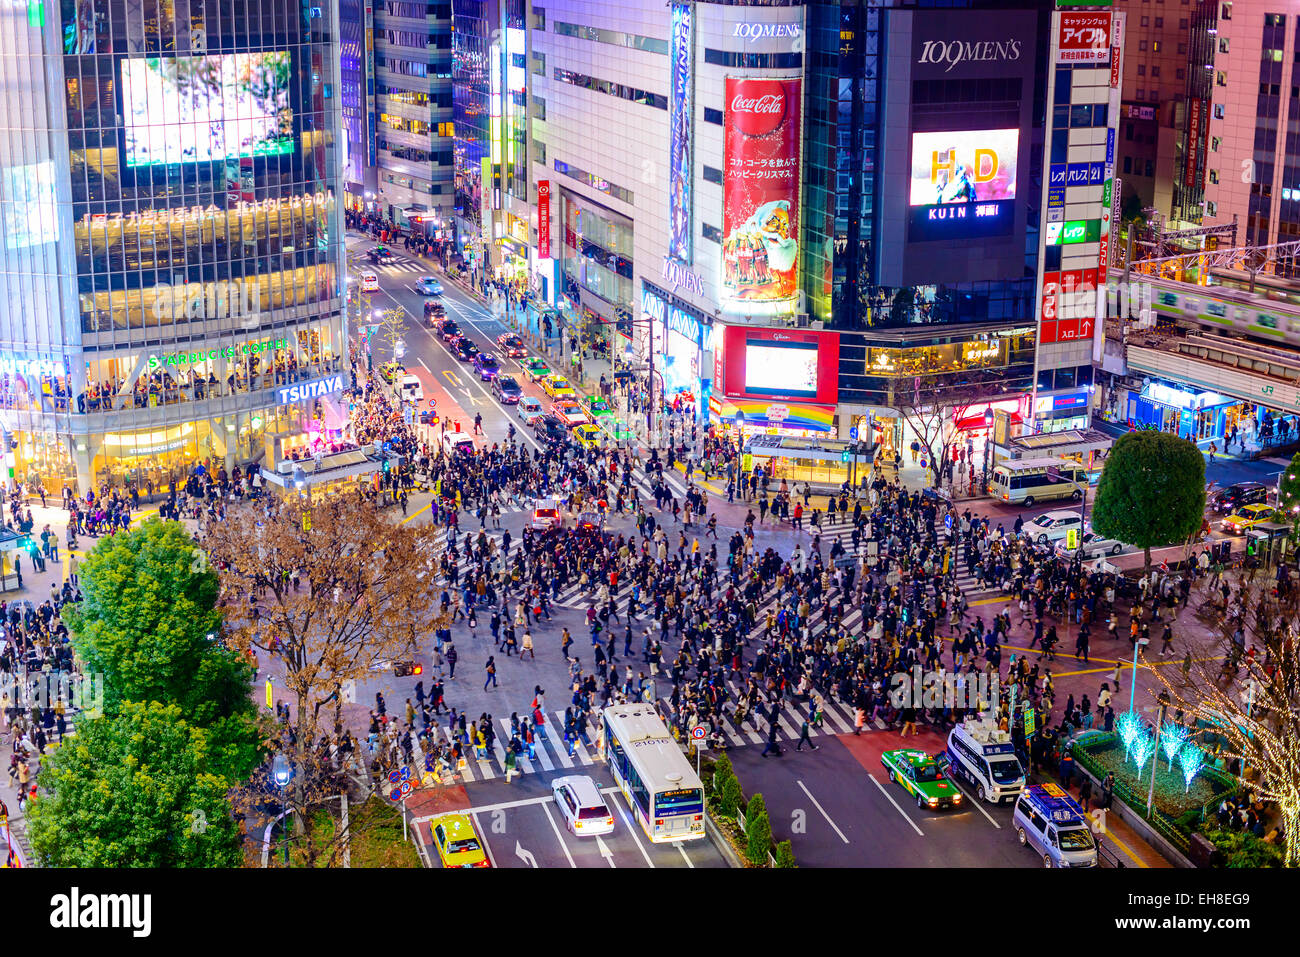 Pedestrians cross at Shibuya Crossing. It is one of the world's most famous scramble crosswalks. - Stock Image